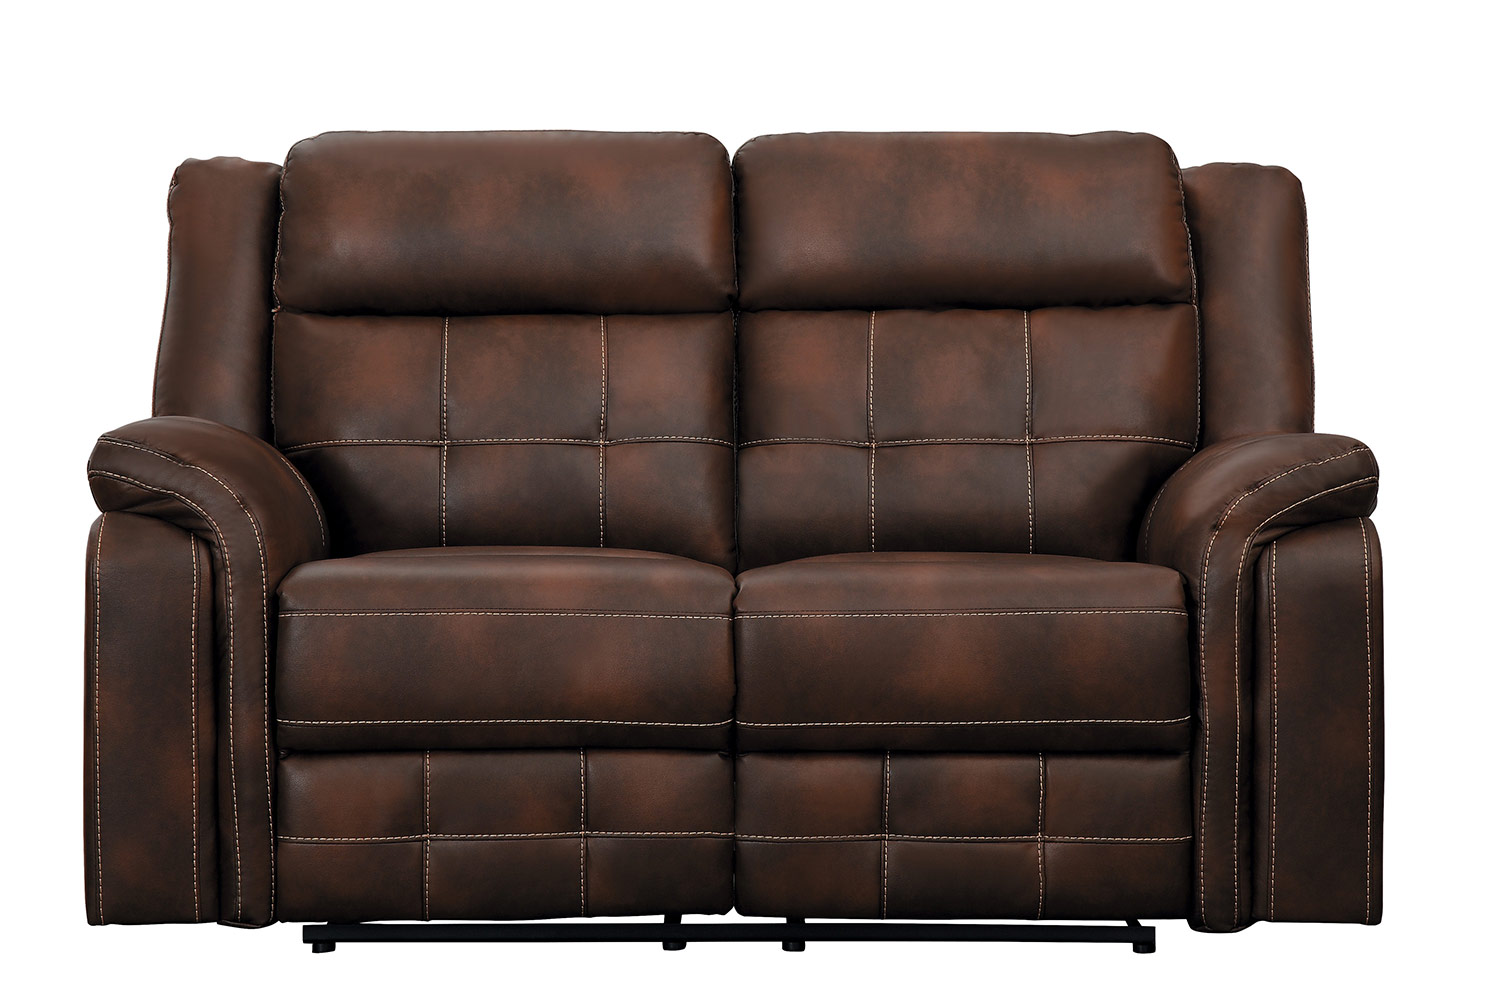 Homelegance Keridge Double Reclining Love Seat - Brown